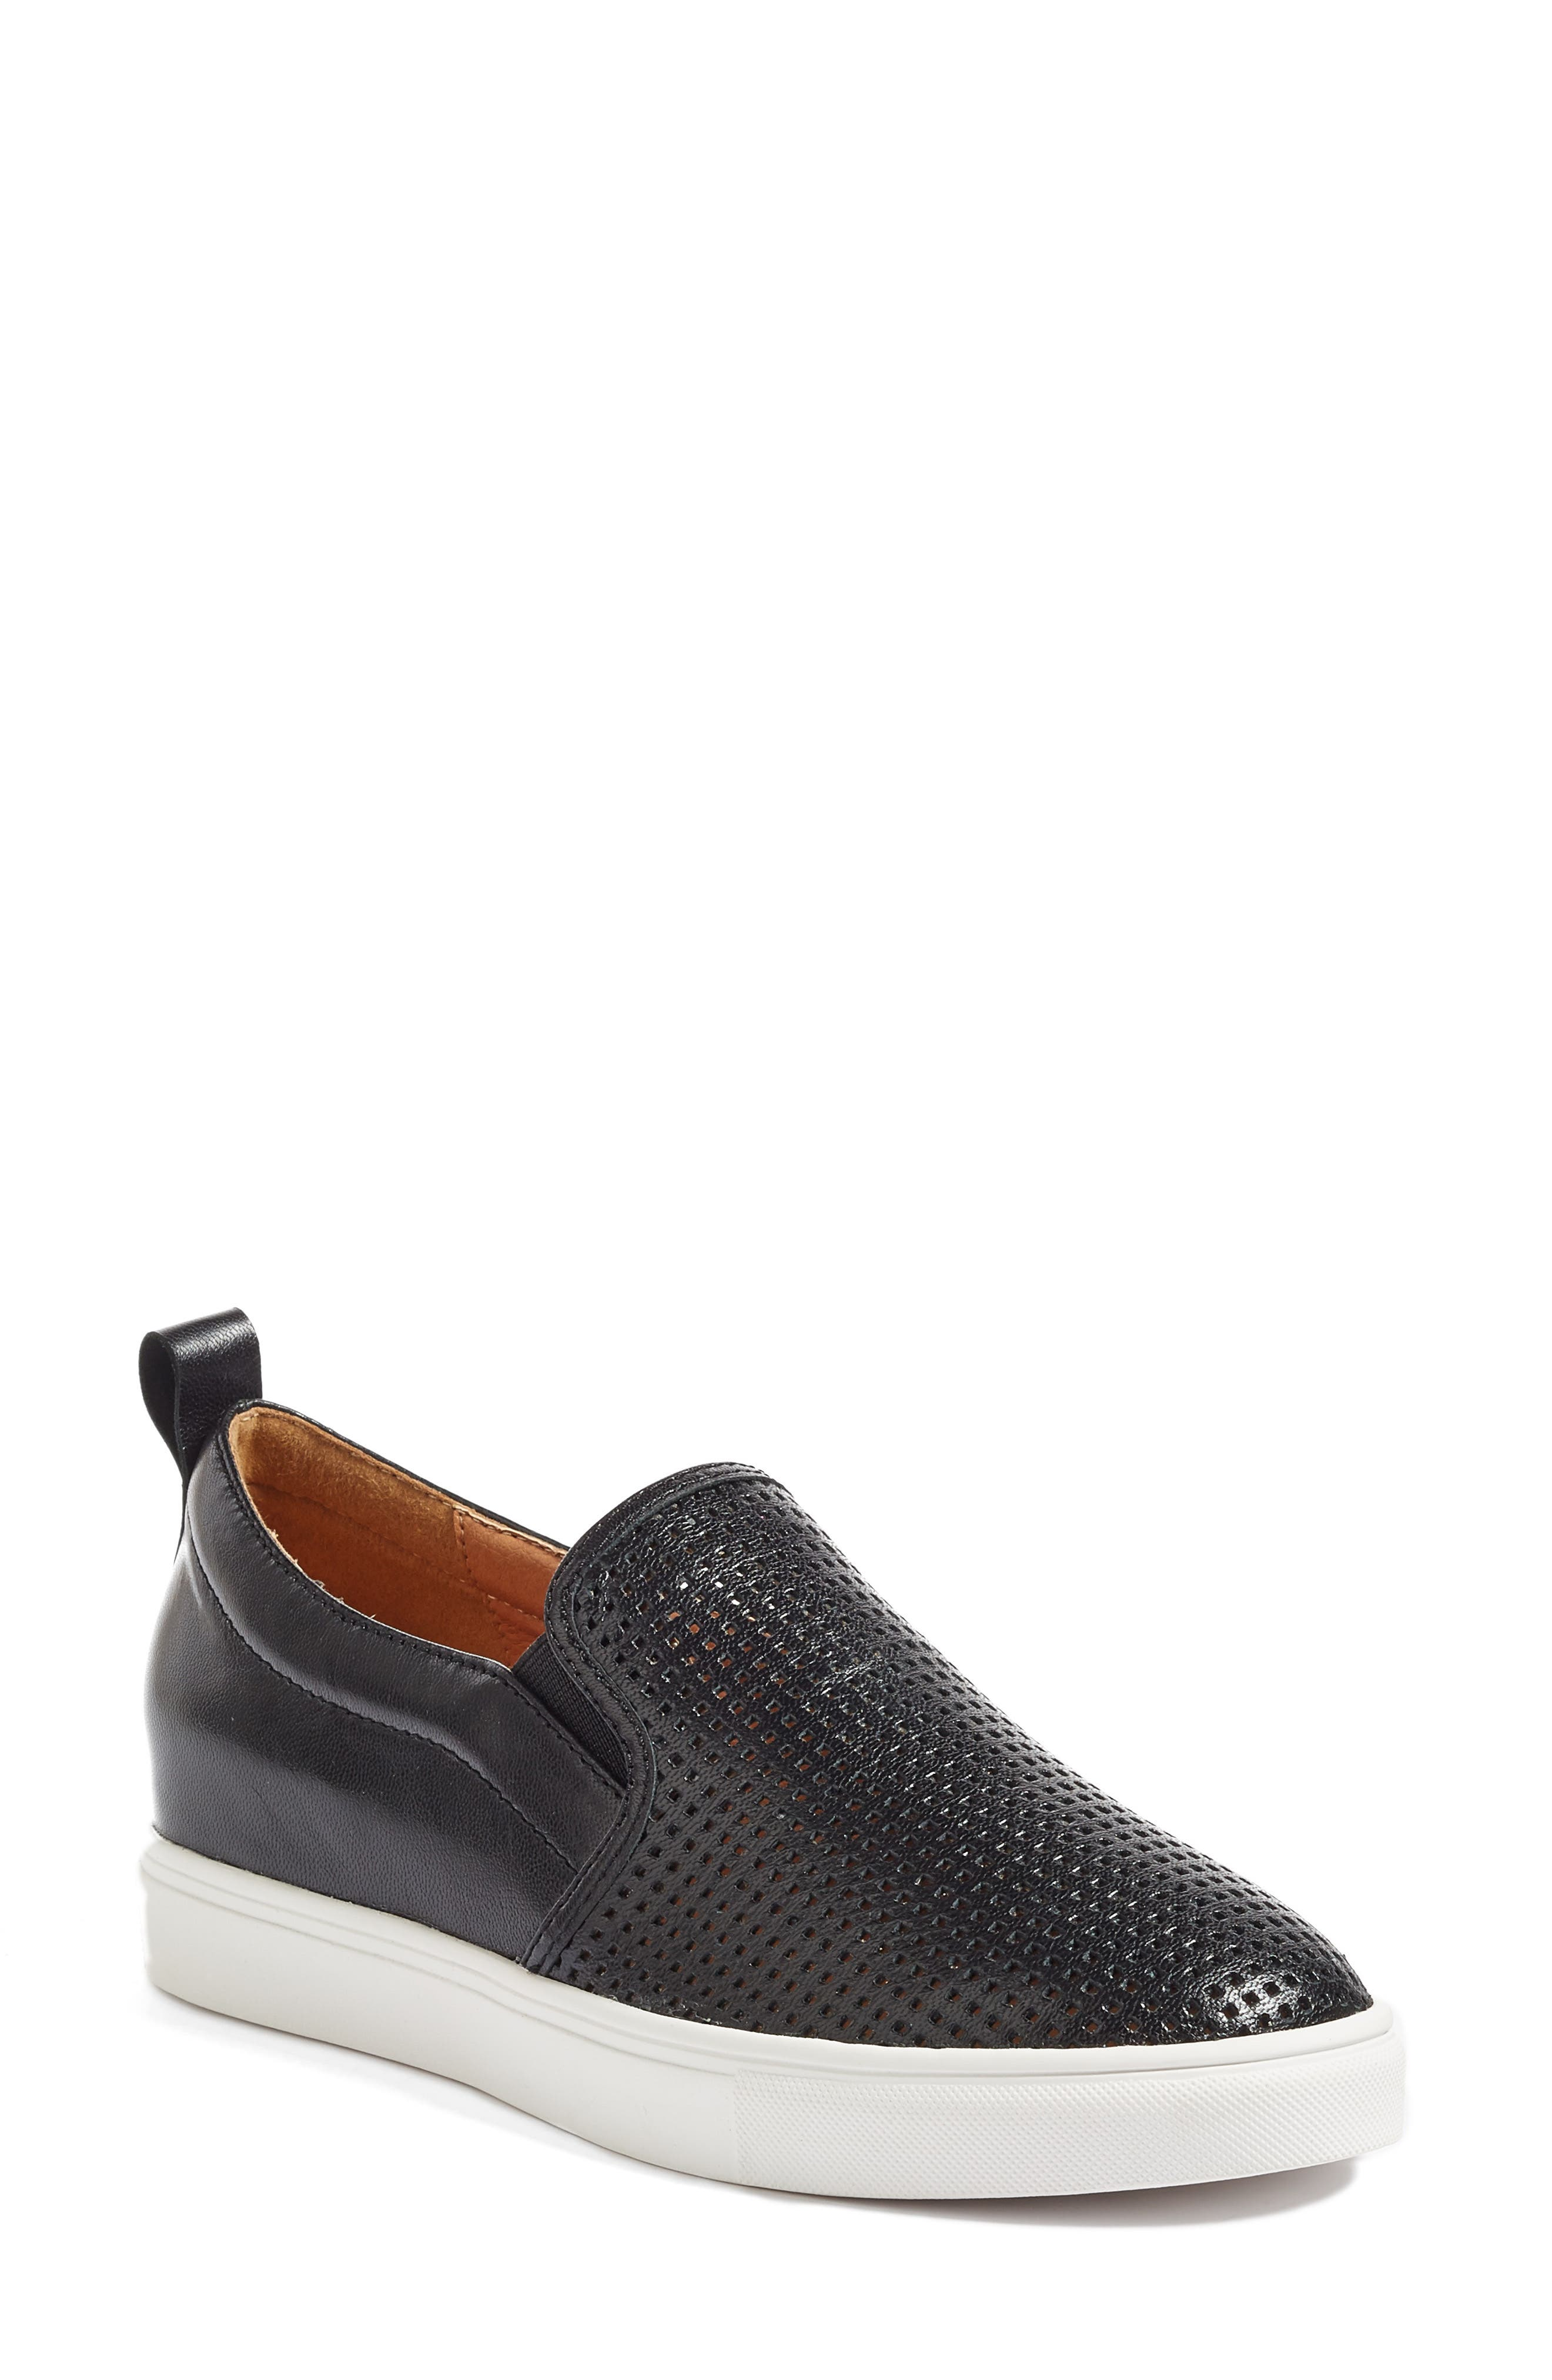 Eden Perforated Slip-On Sneaker, Main, color, 001